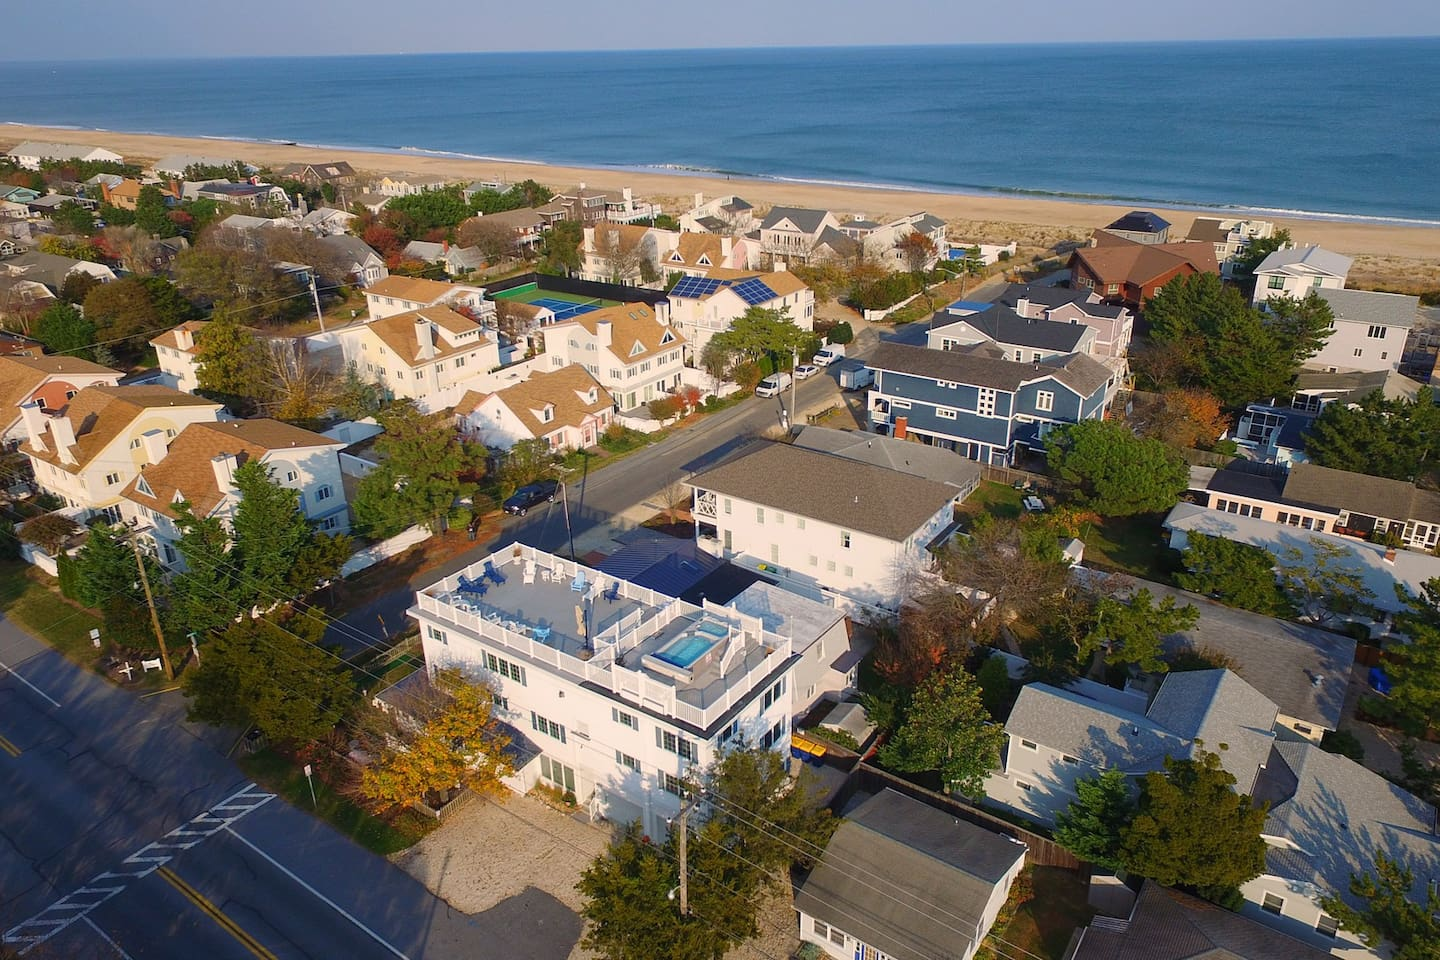 Aerial view of Memories highlighting the rooftop deck overlooking the Ocean with the heated pool and hot tub!